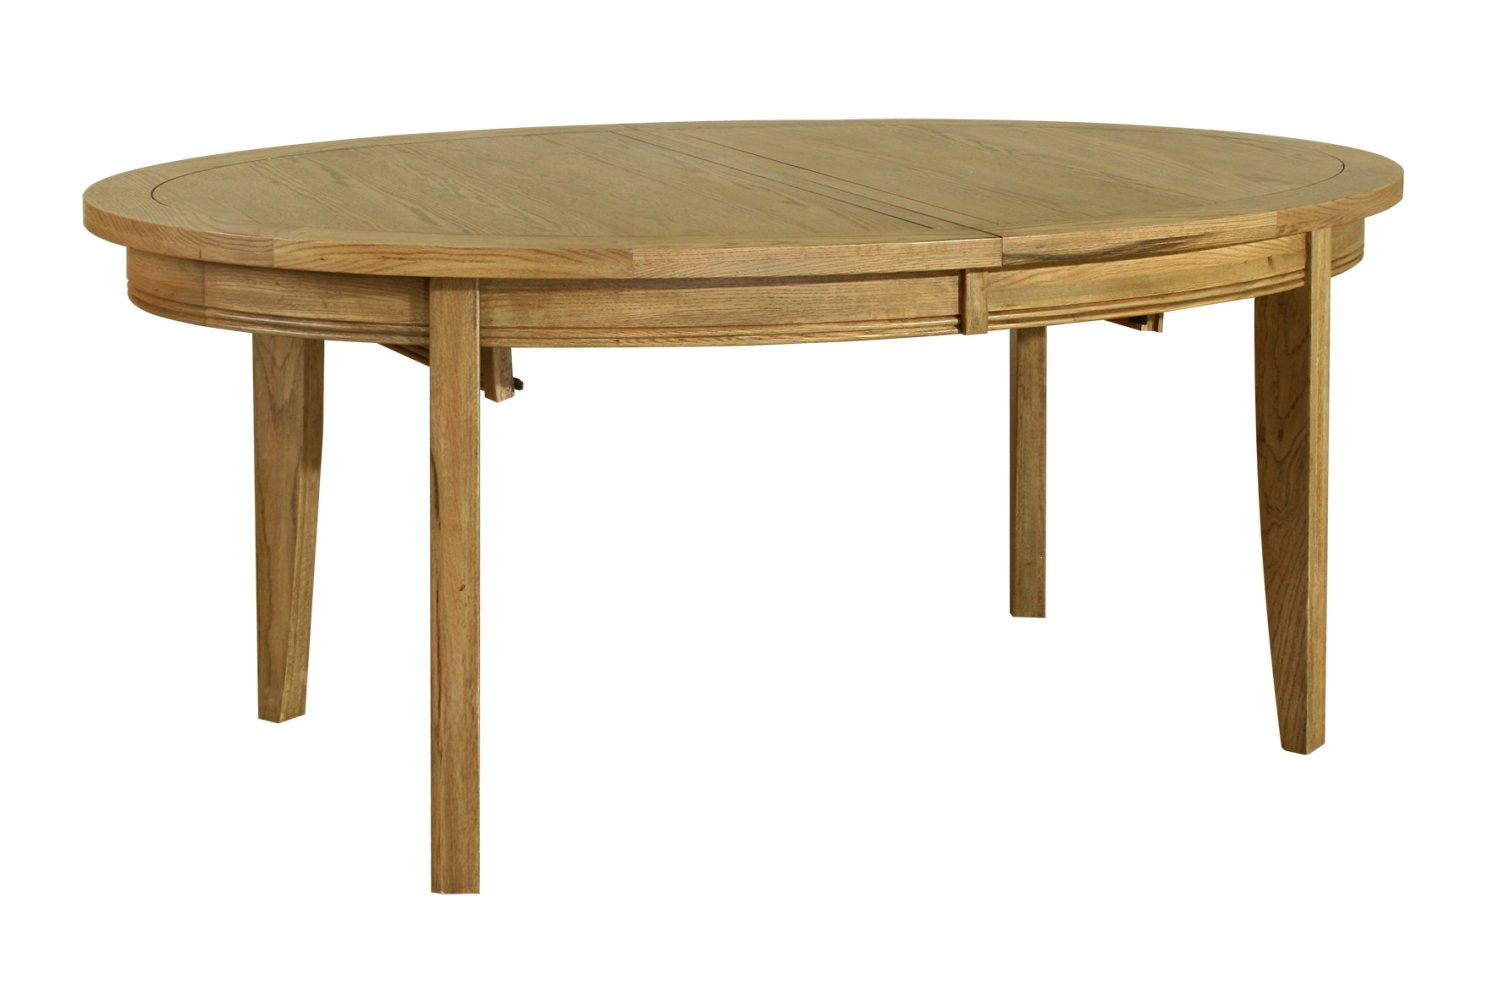 Solid Oak Dining Room Furniture Oval Extending Dining Table EBay. Full resolution‎  photograph, nominally Width 1500 Height 1000 pixels, photograph with #4C300F.